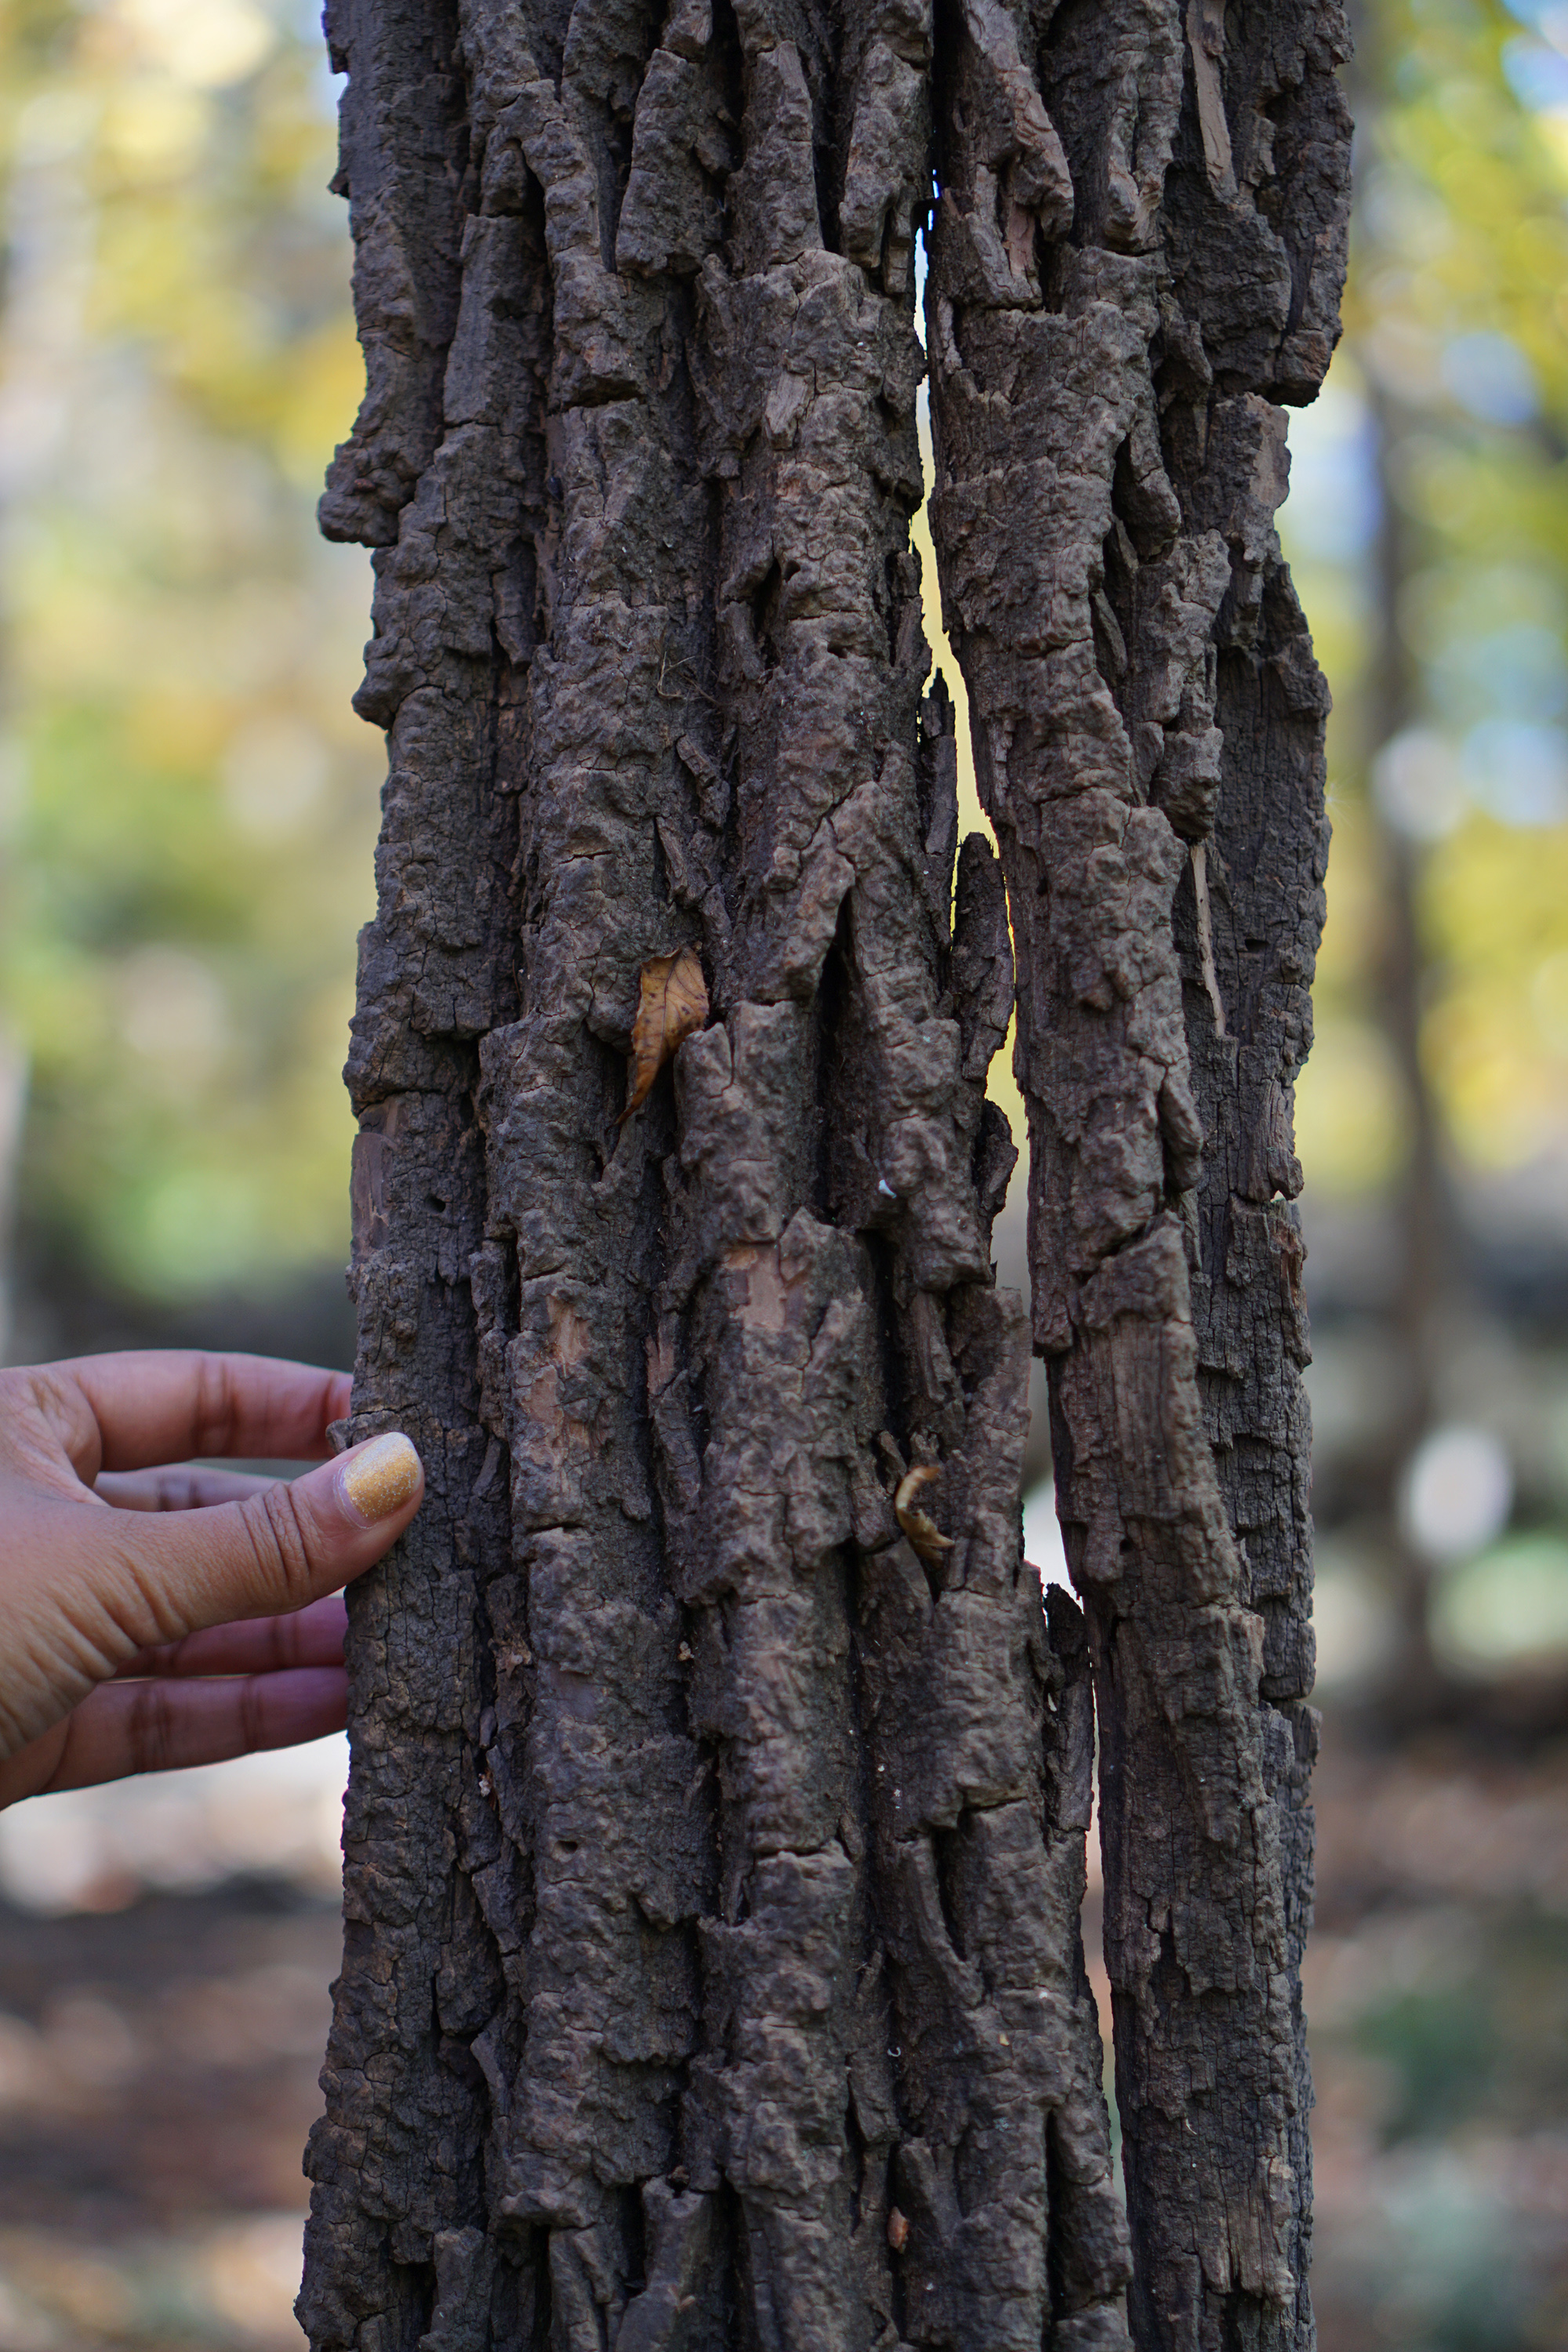 Shed bark of an ash tree, Miami Woods, Morton Grove Illinois / Darker than Green